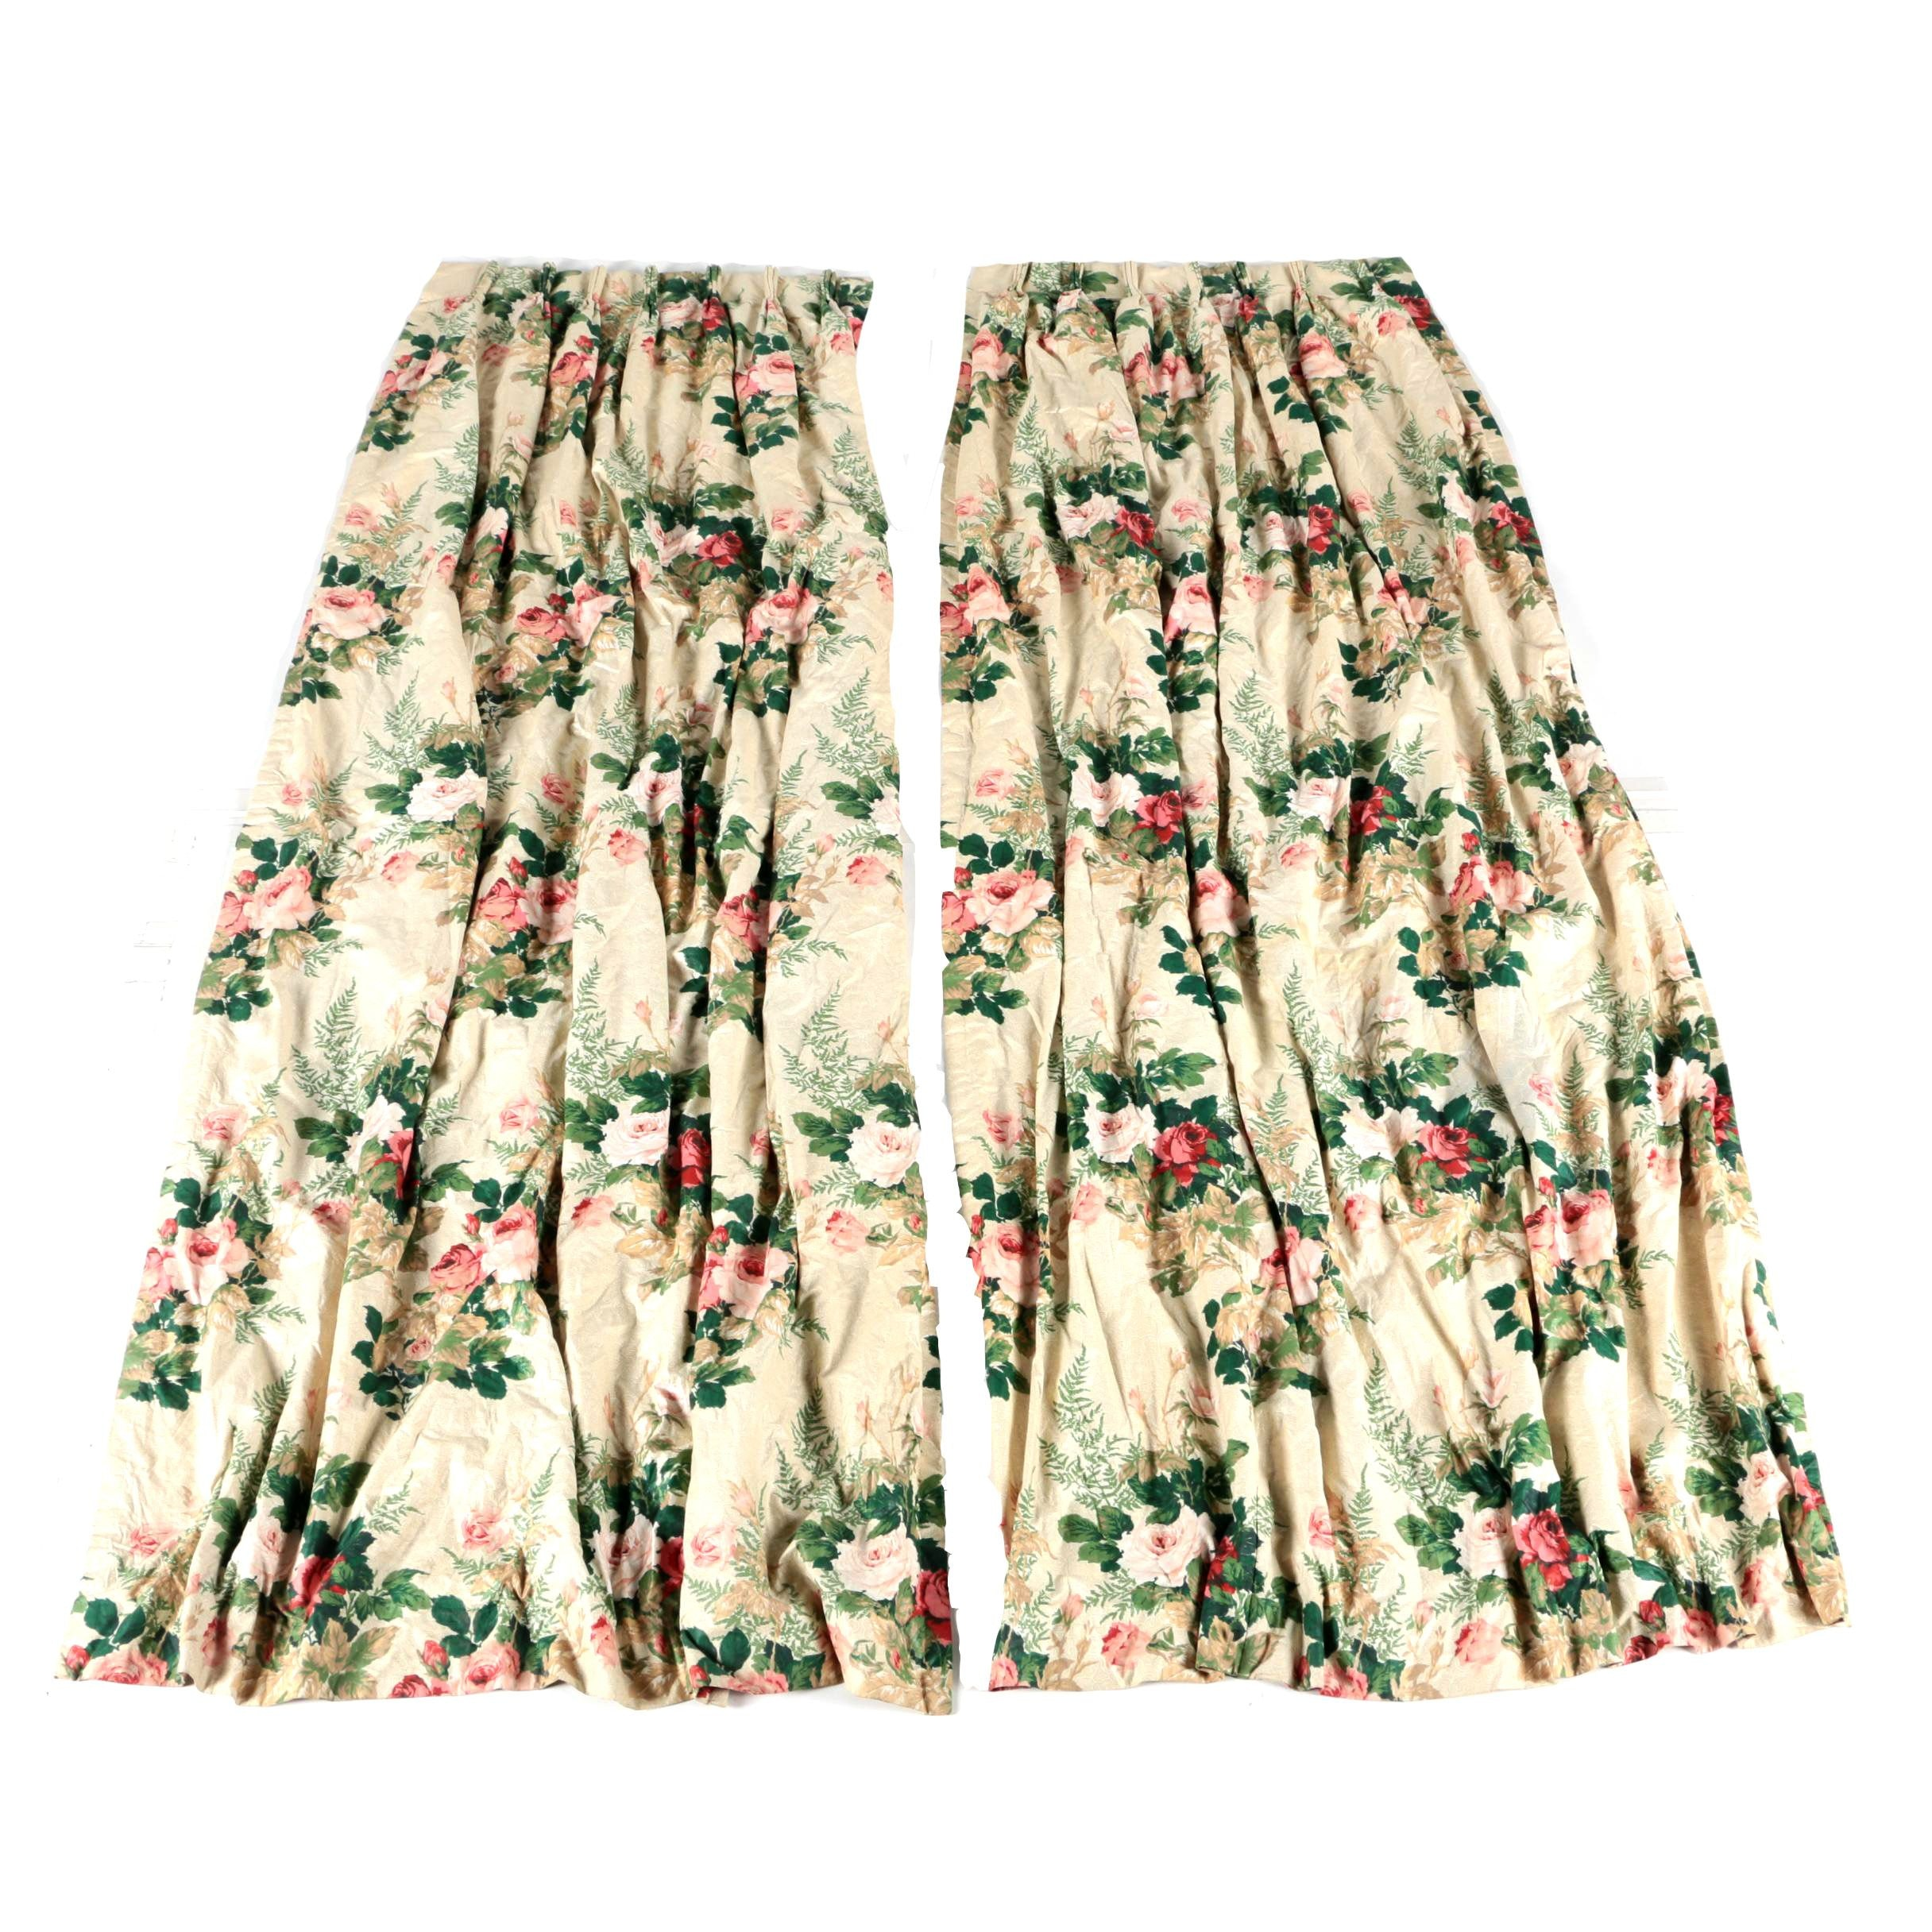 PInch Pleated Floral Drapes